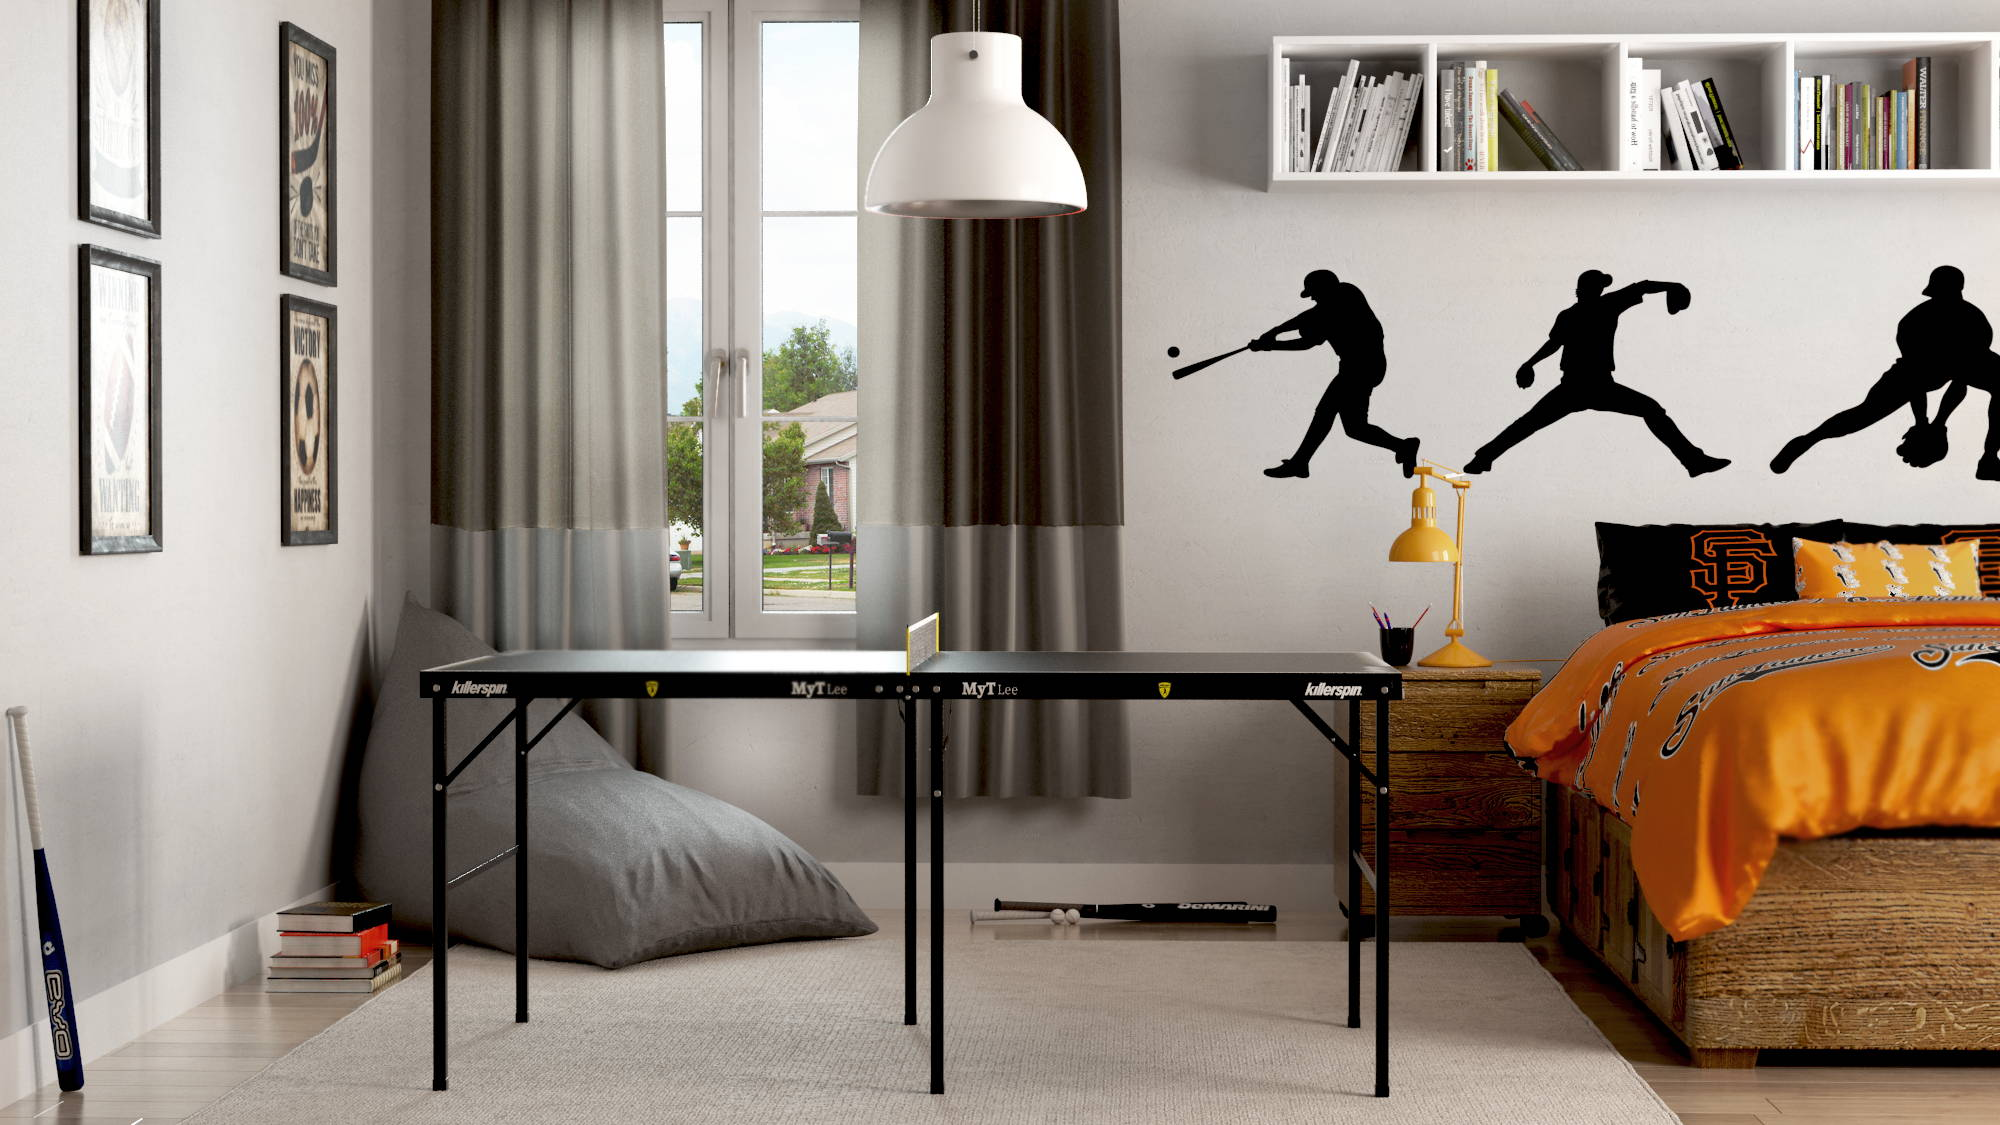 MyT Small Ping Pong Table Bruce Lee Edition in Bedroom